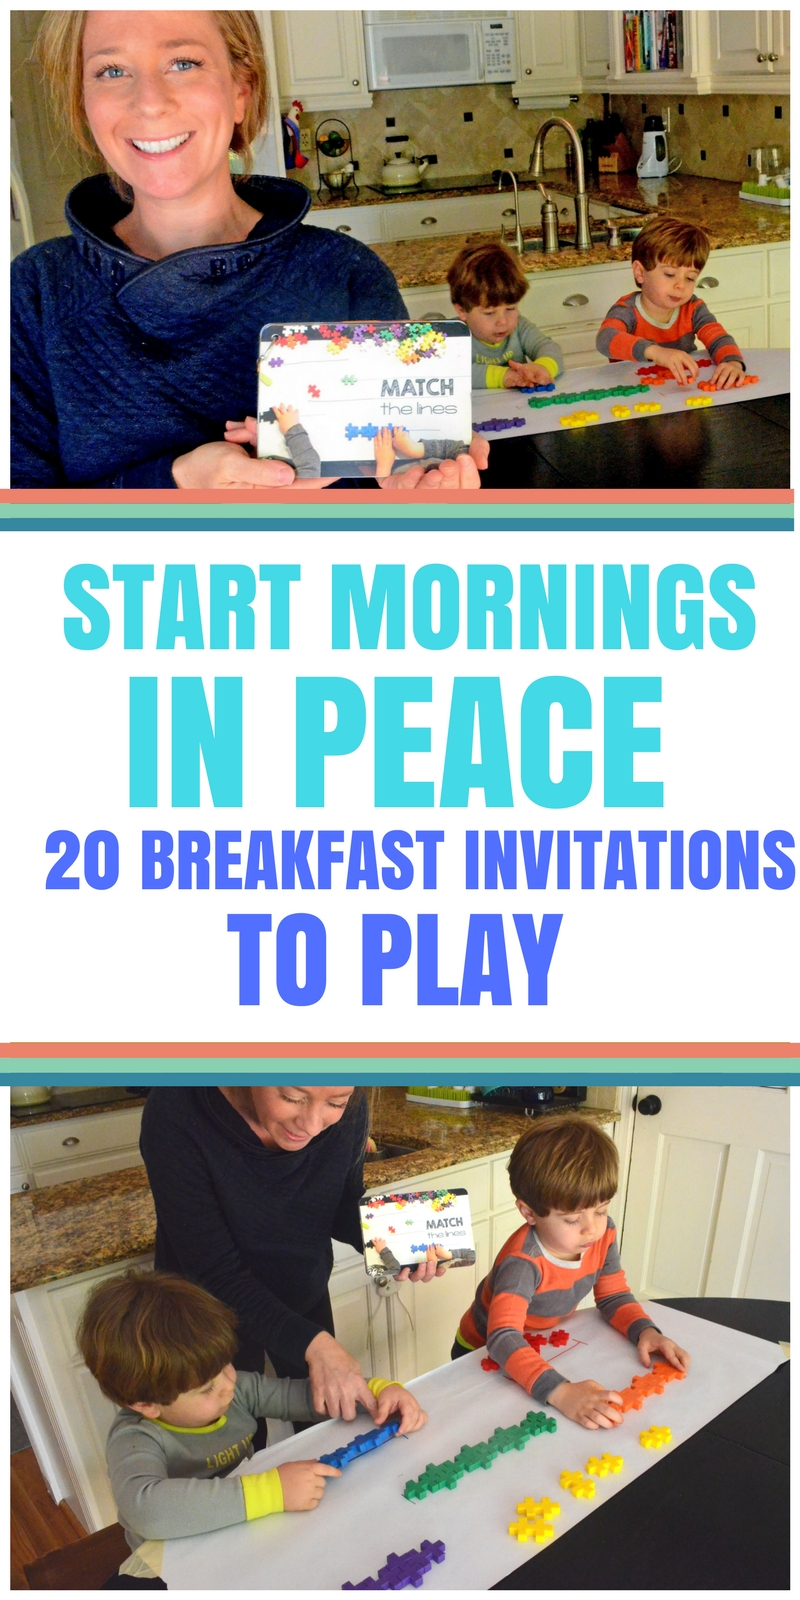 20 BREAKFAST INVITATIONS TO HELP YOUR MORNING